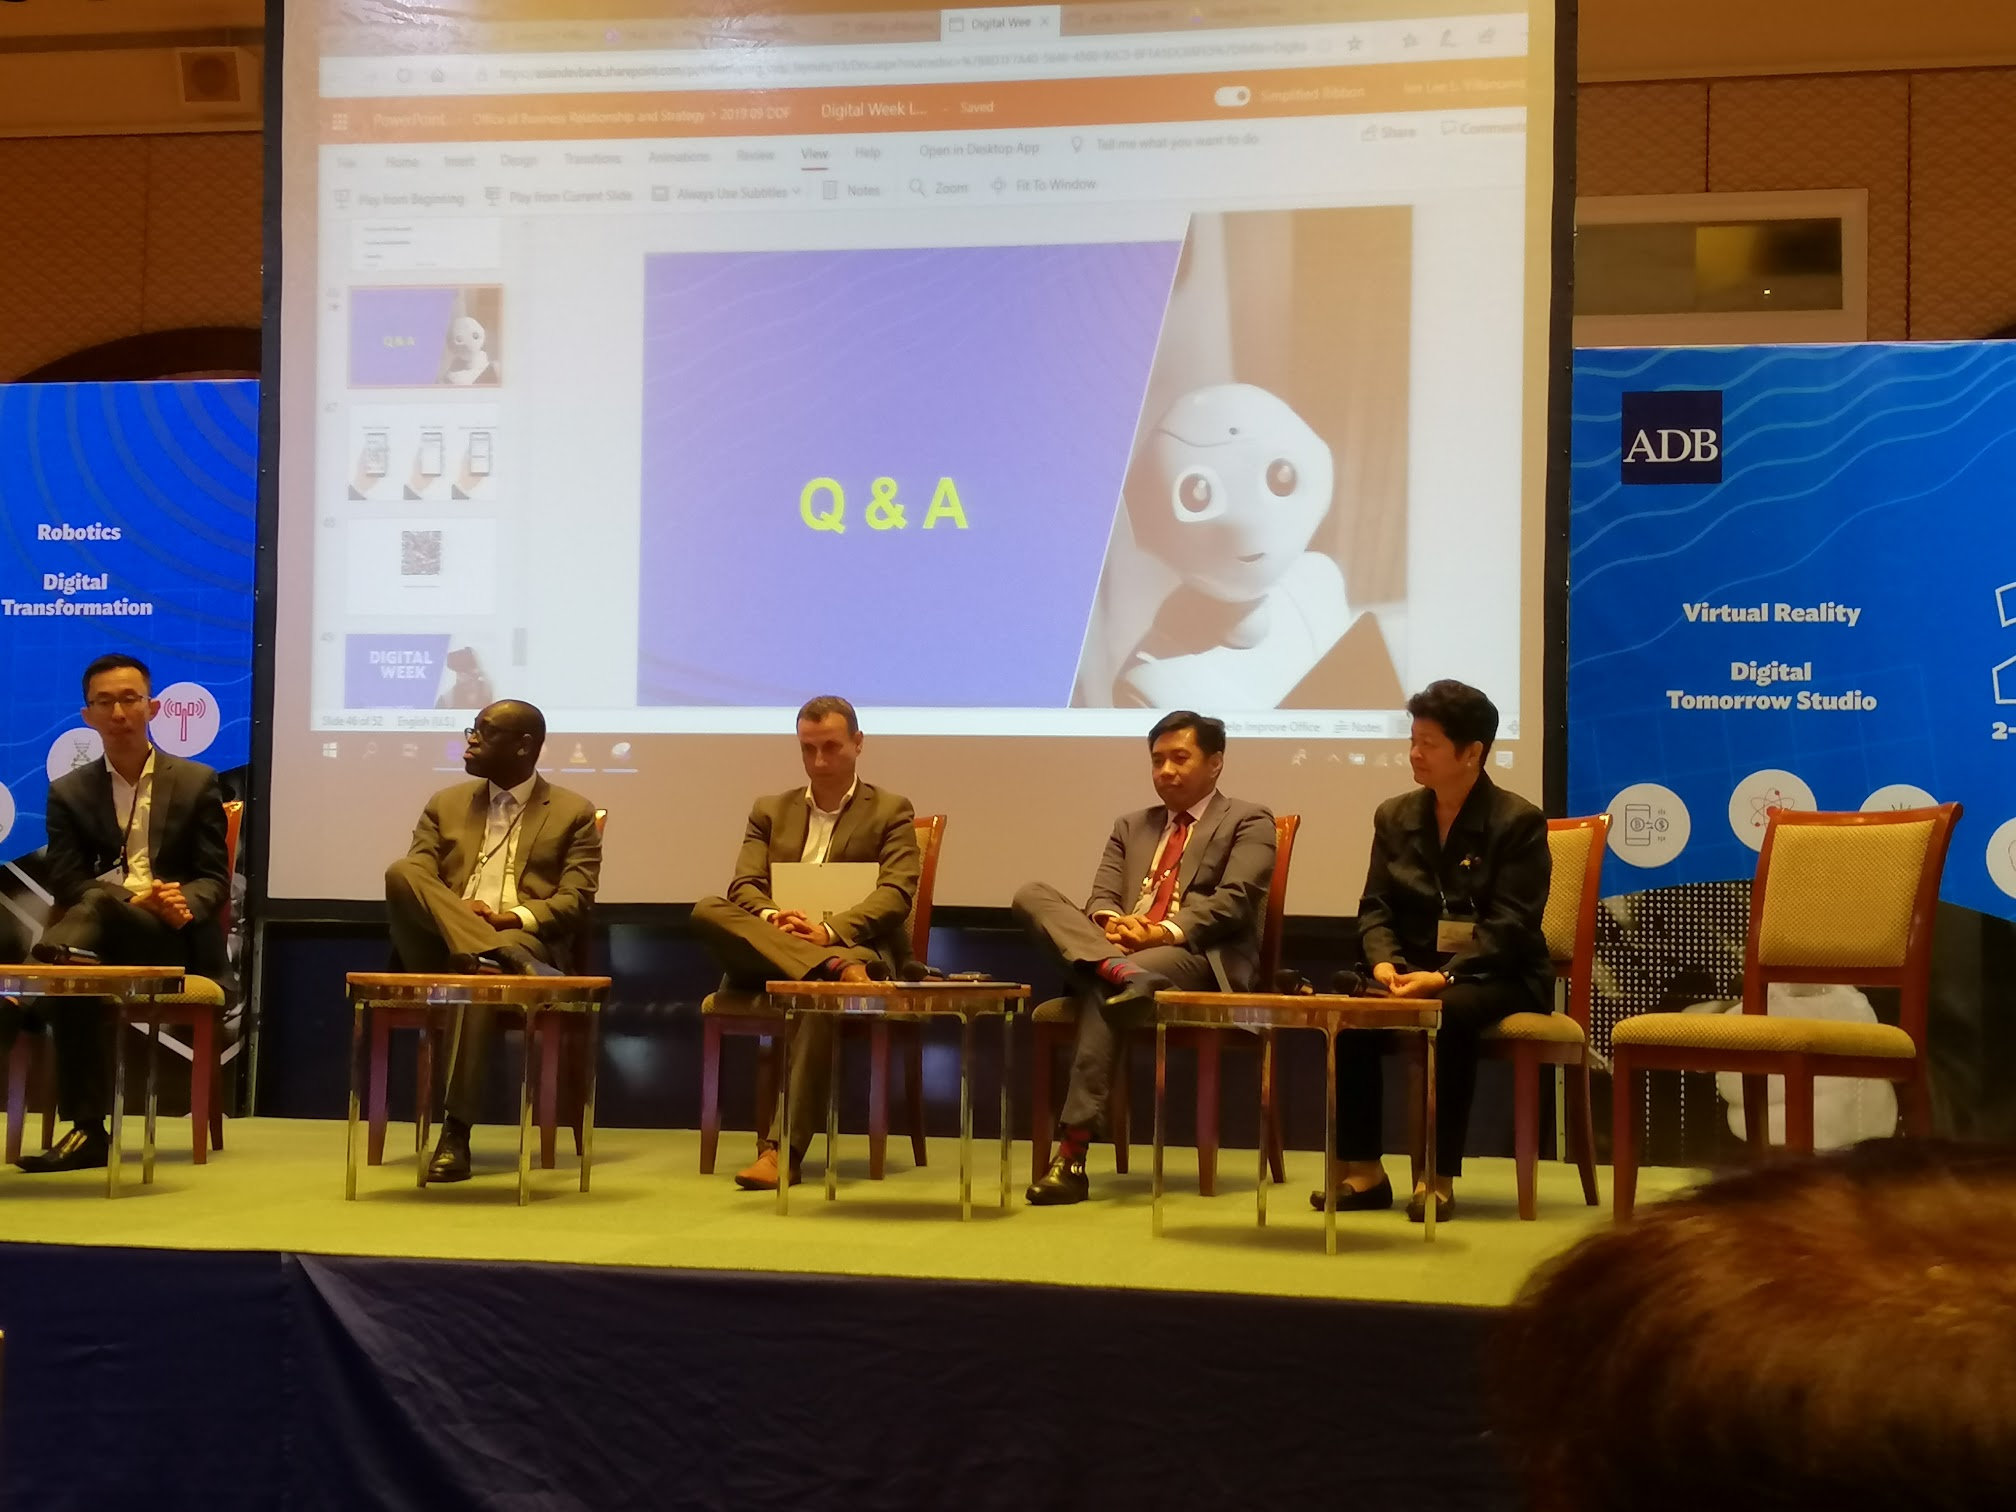 10:05 a.m. - The industry experts on Digital Transformation are called to the stage. From left to right: Vincent Loy (Monetary Authority of Singapore), Peppin Cyriaque Vougo (AfDB), Stephen Evans (NIB), Henry Aguda (Union Bank), Ma. Carmen Testa (AIM)